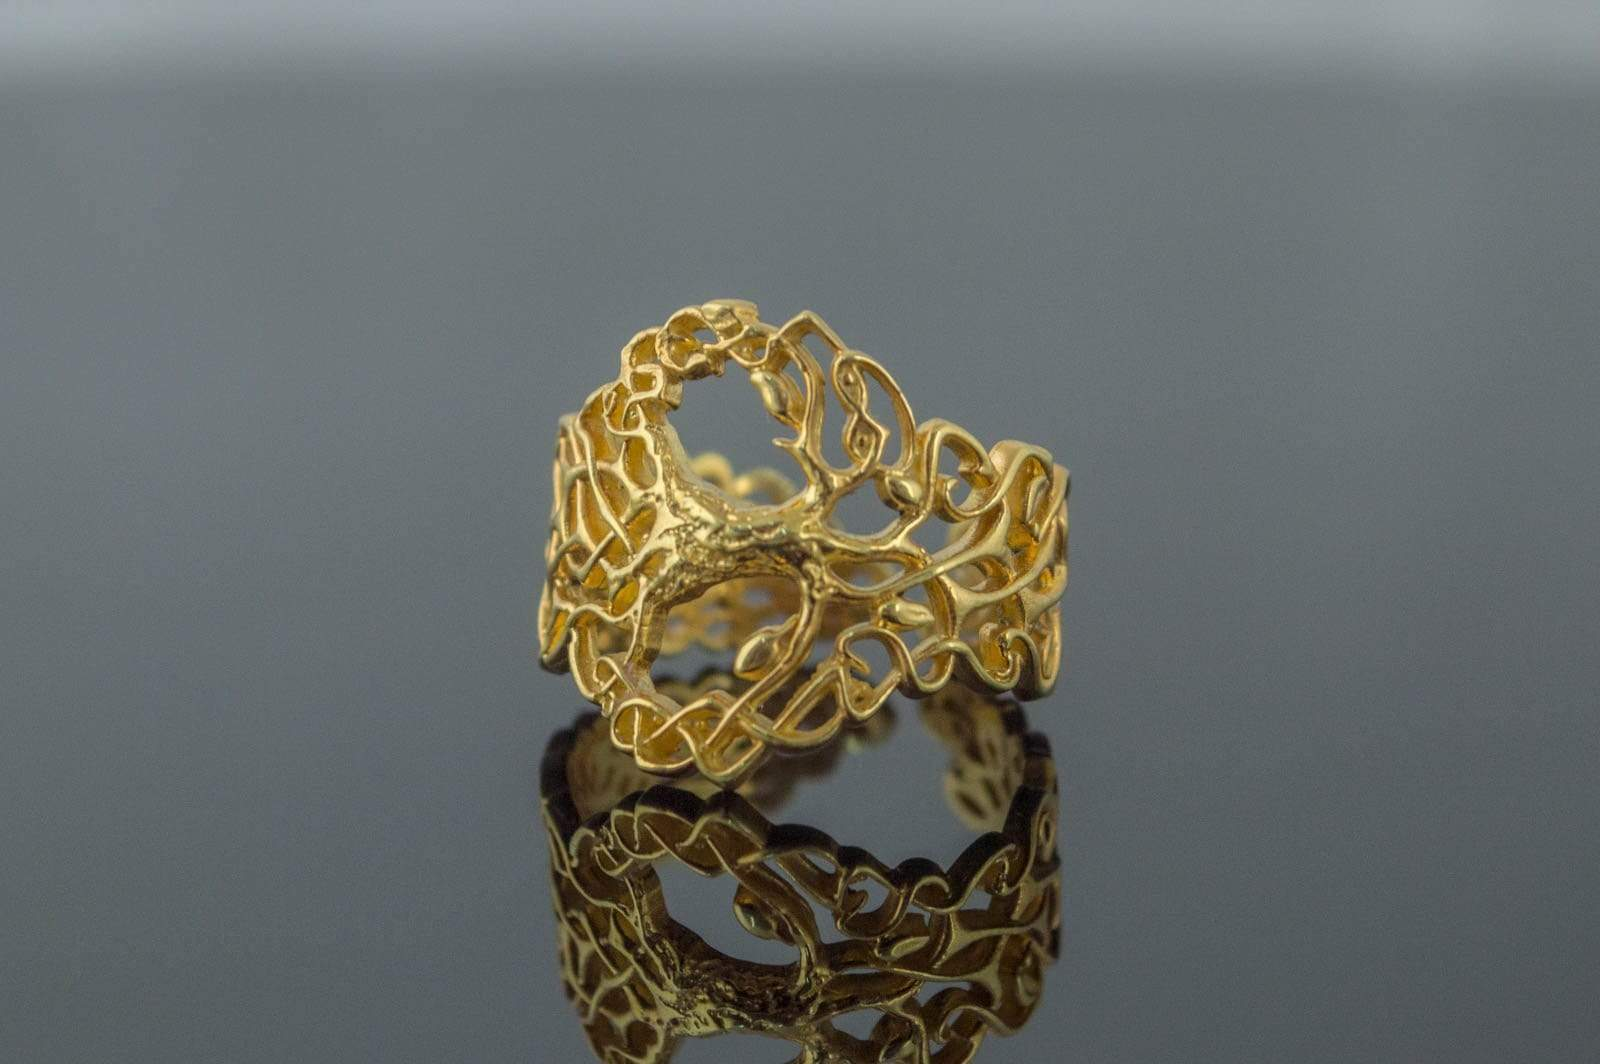 Yggdrasil Ring with Ornament Gold Unique Norse Jewelry